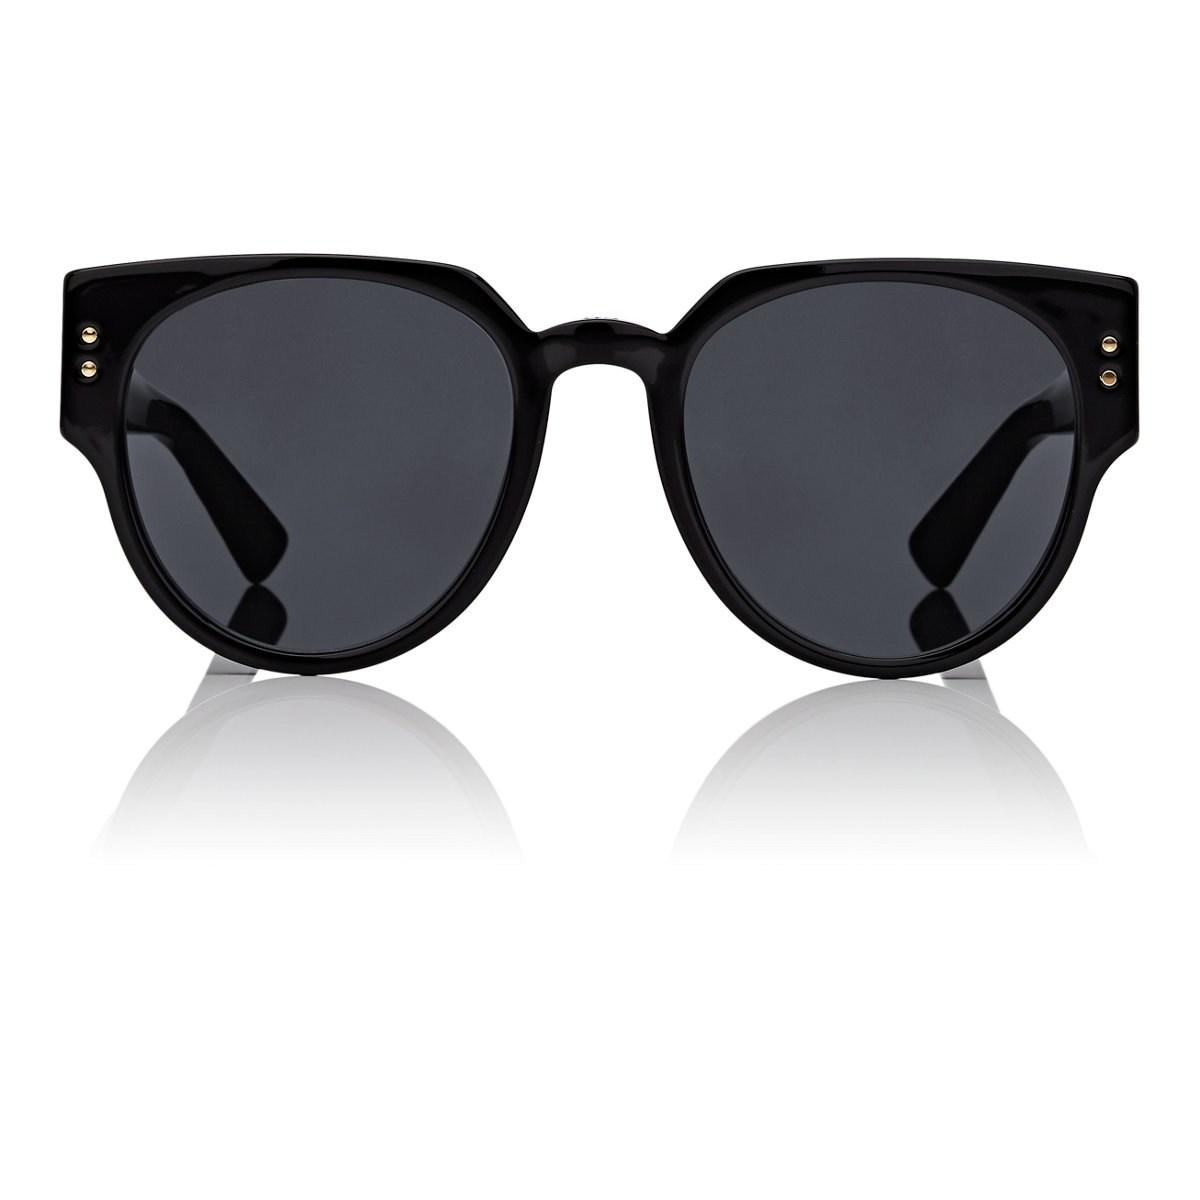 9013bfeef18 Lyst - Dior ladystuds3 Sunglasses in Black